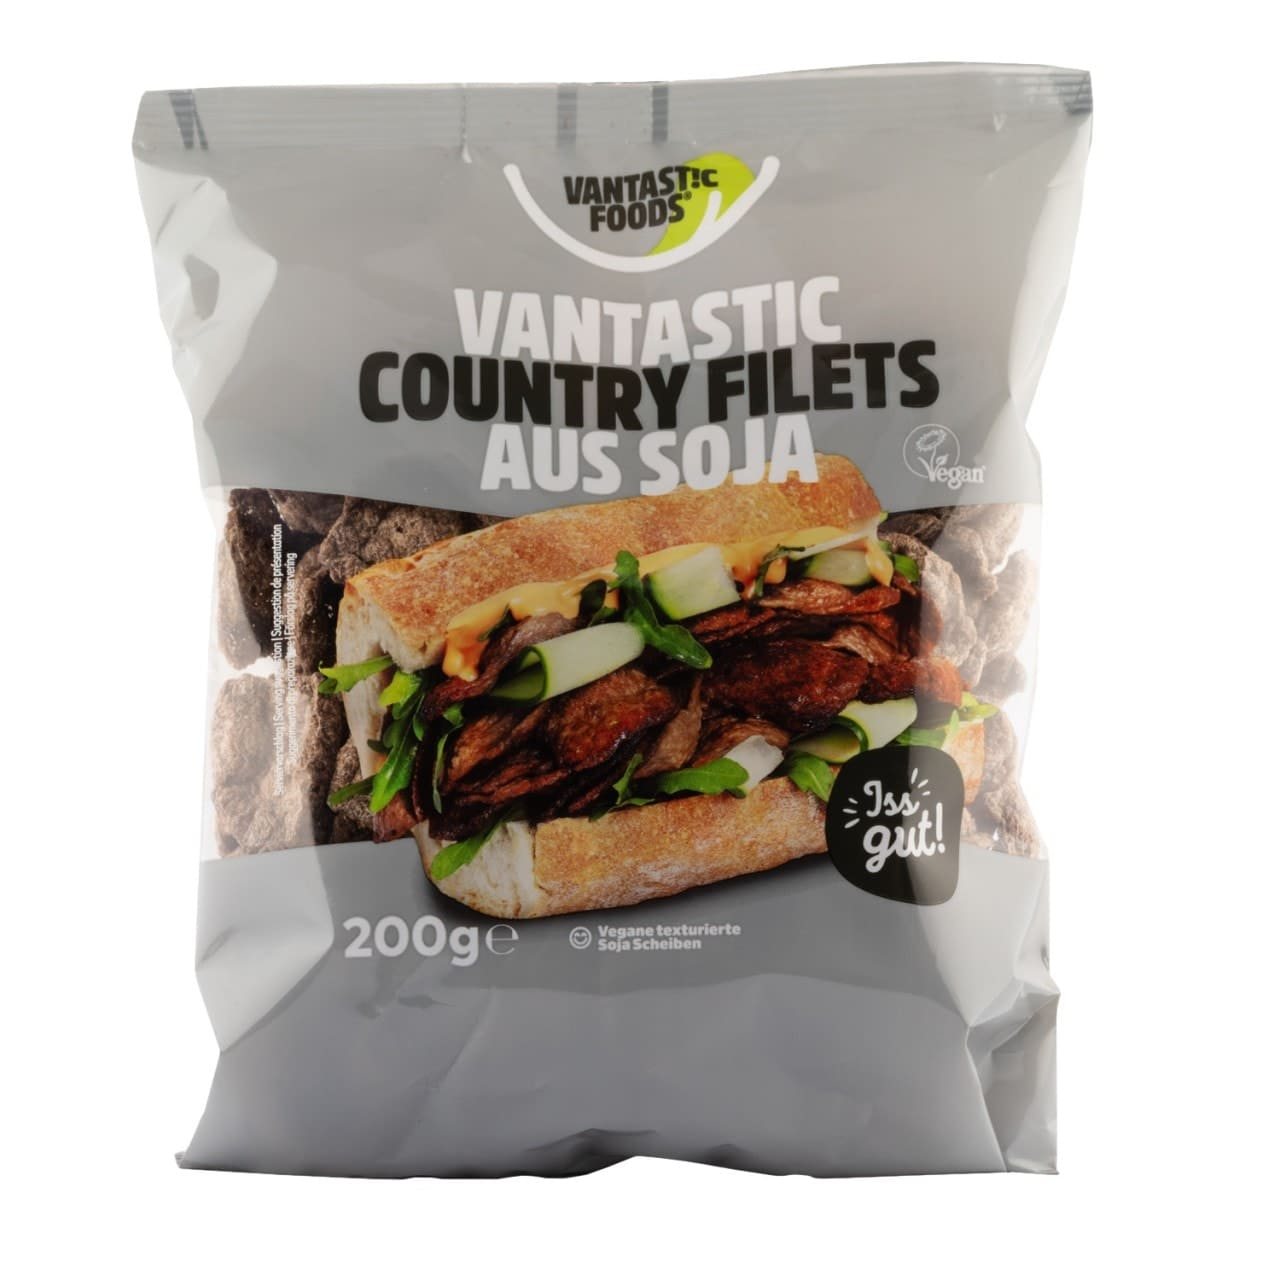 Bild für Vantastic foods VANTASTIC COUNTRY FILETS aus Soja